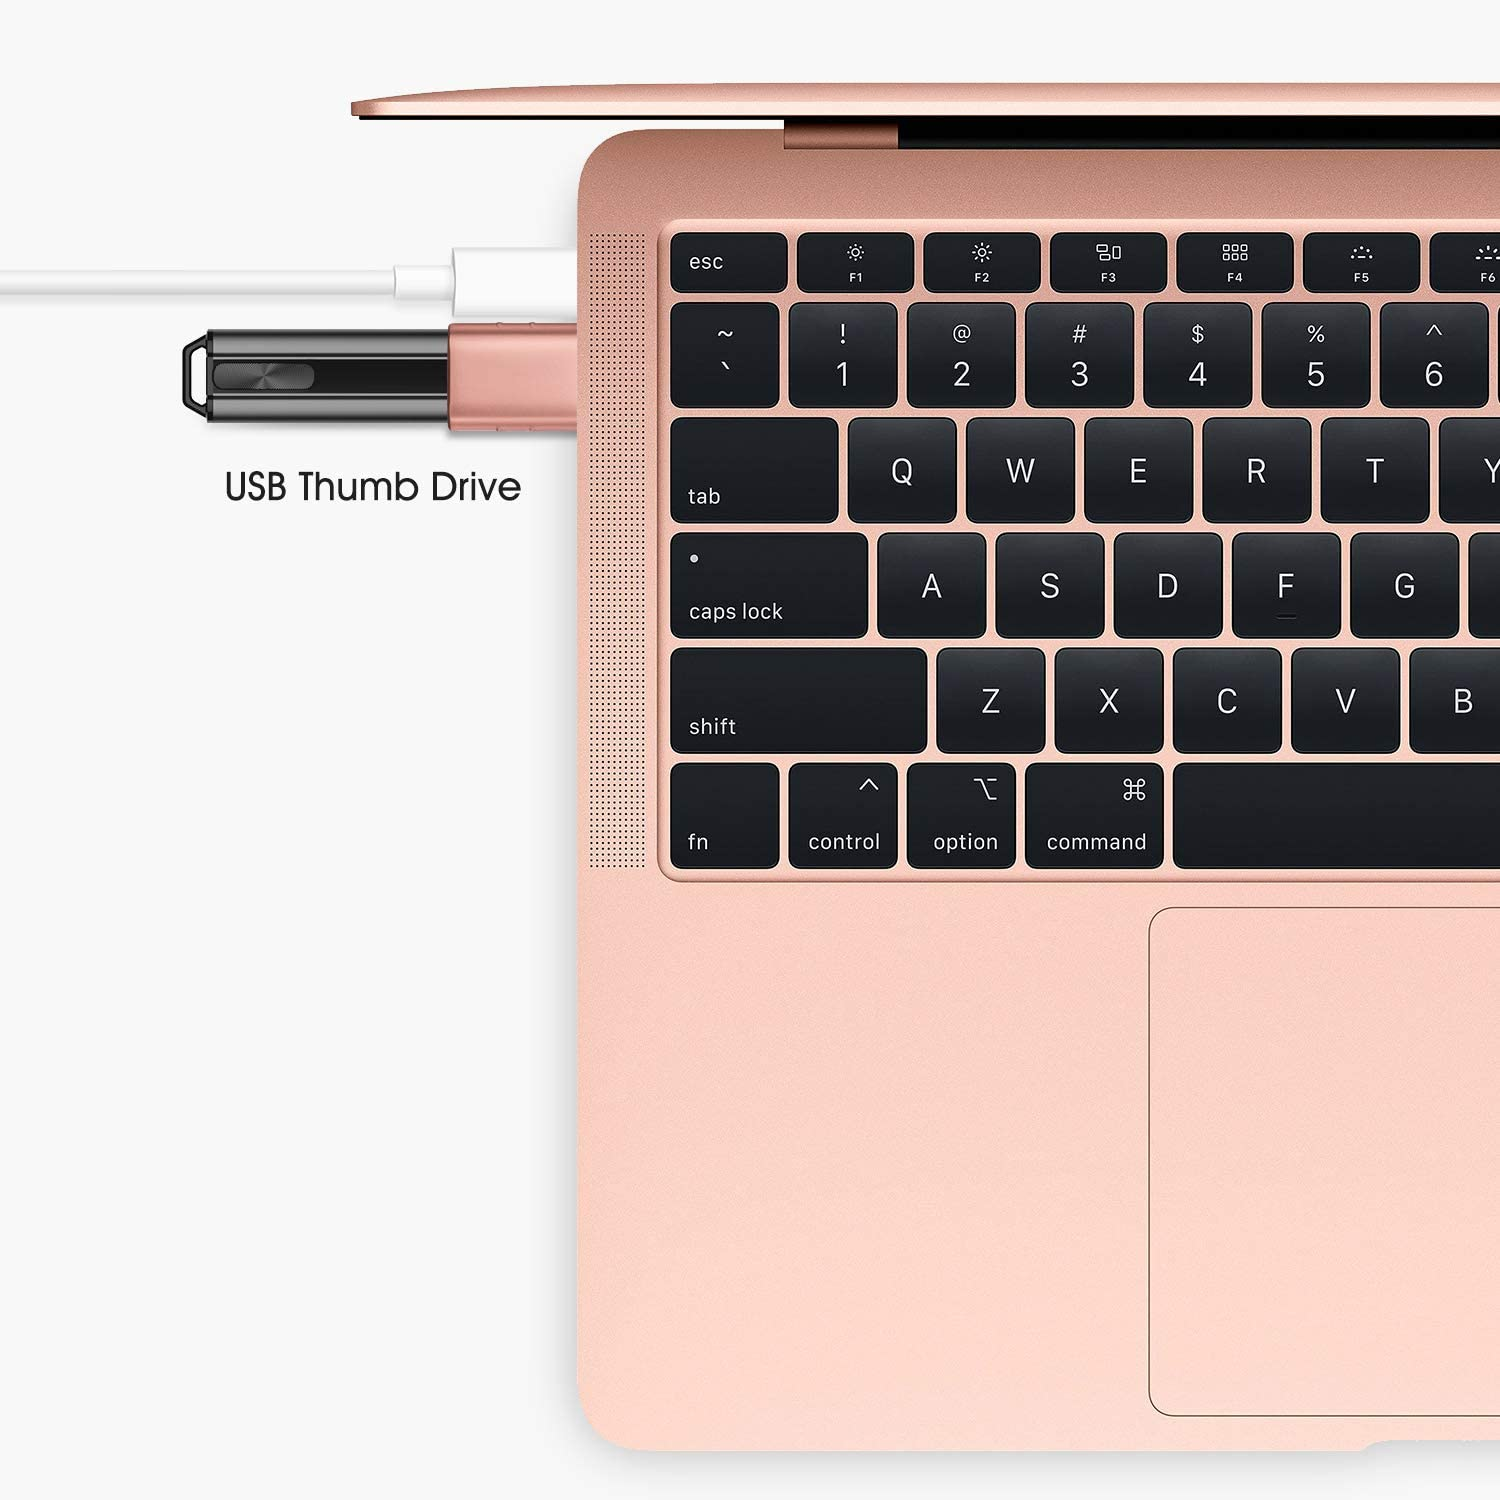 MacBook Air 2019//2018 Syntech USB C to USB Adapter 2 Pack Dell XPS and More Type C Devices Rose Gold Thunderbolt 3 to USB 3.0 Adapter Compatible with MacBook Pro 2019 and Before